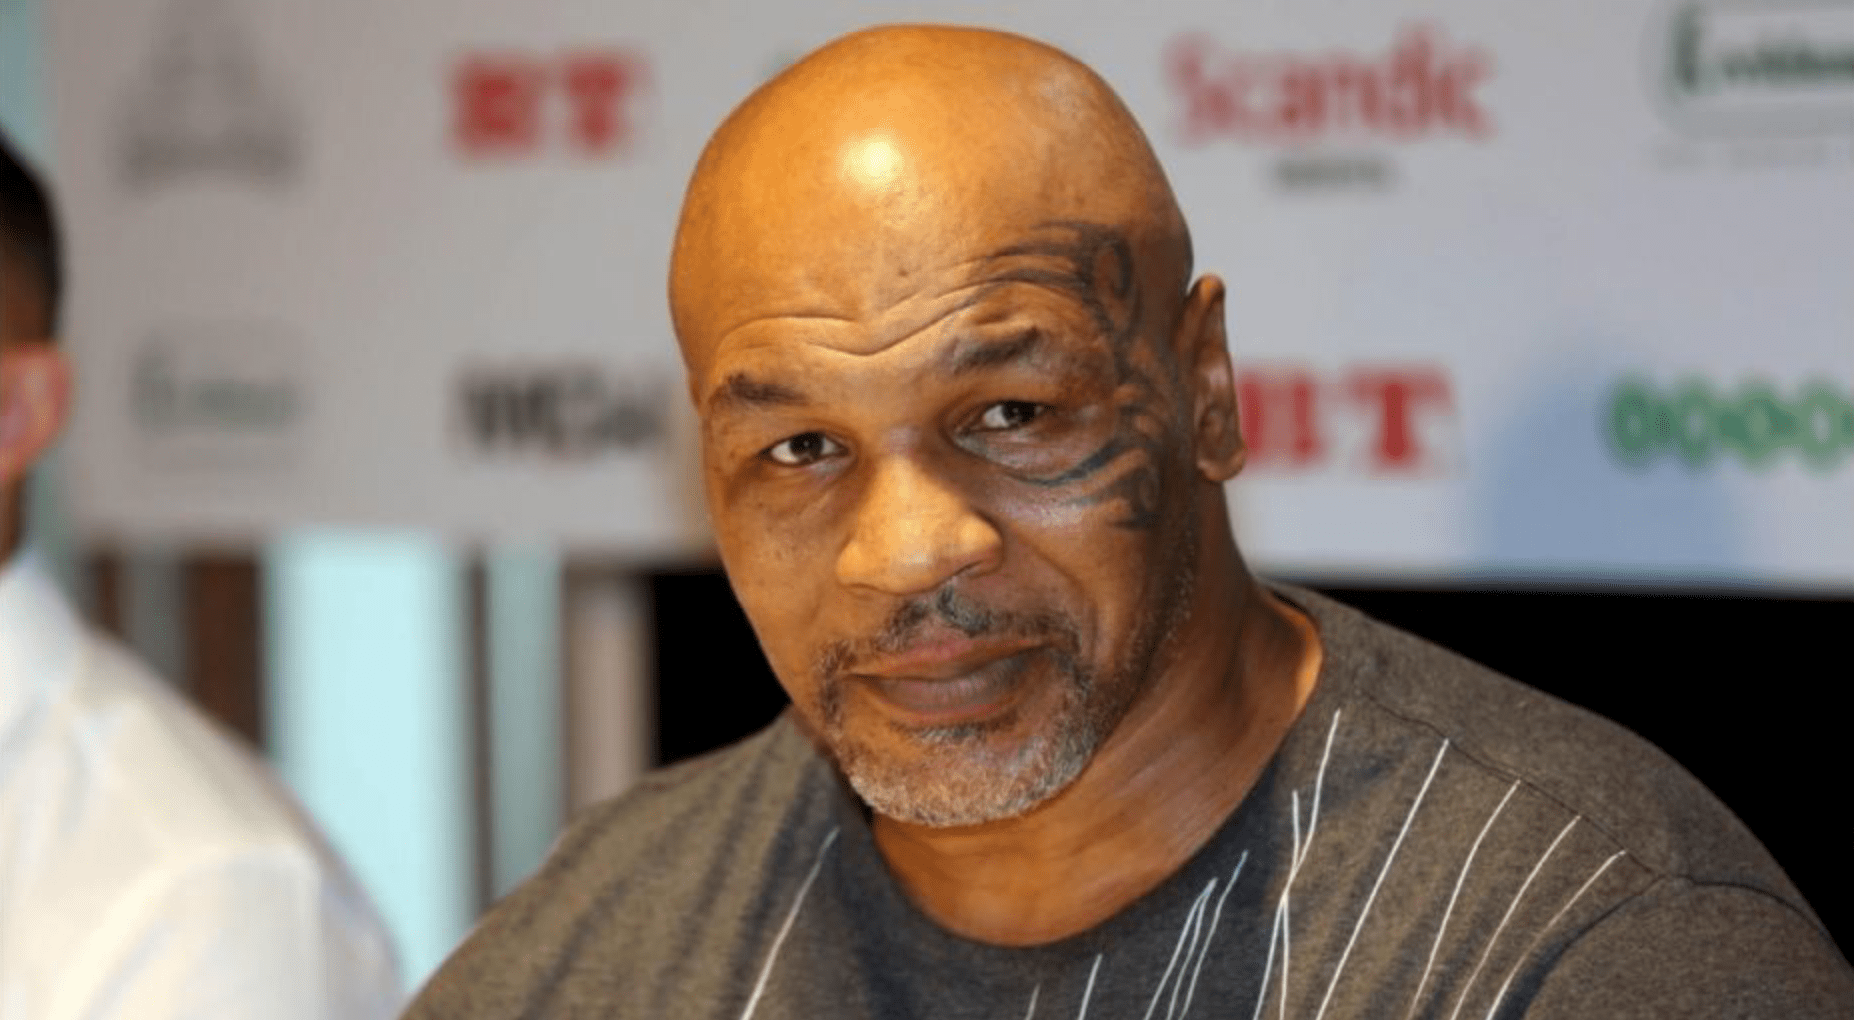 BKFC To Make Second Offer To Mike Tyson